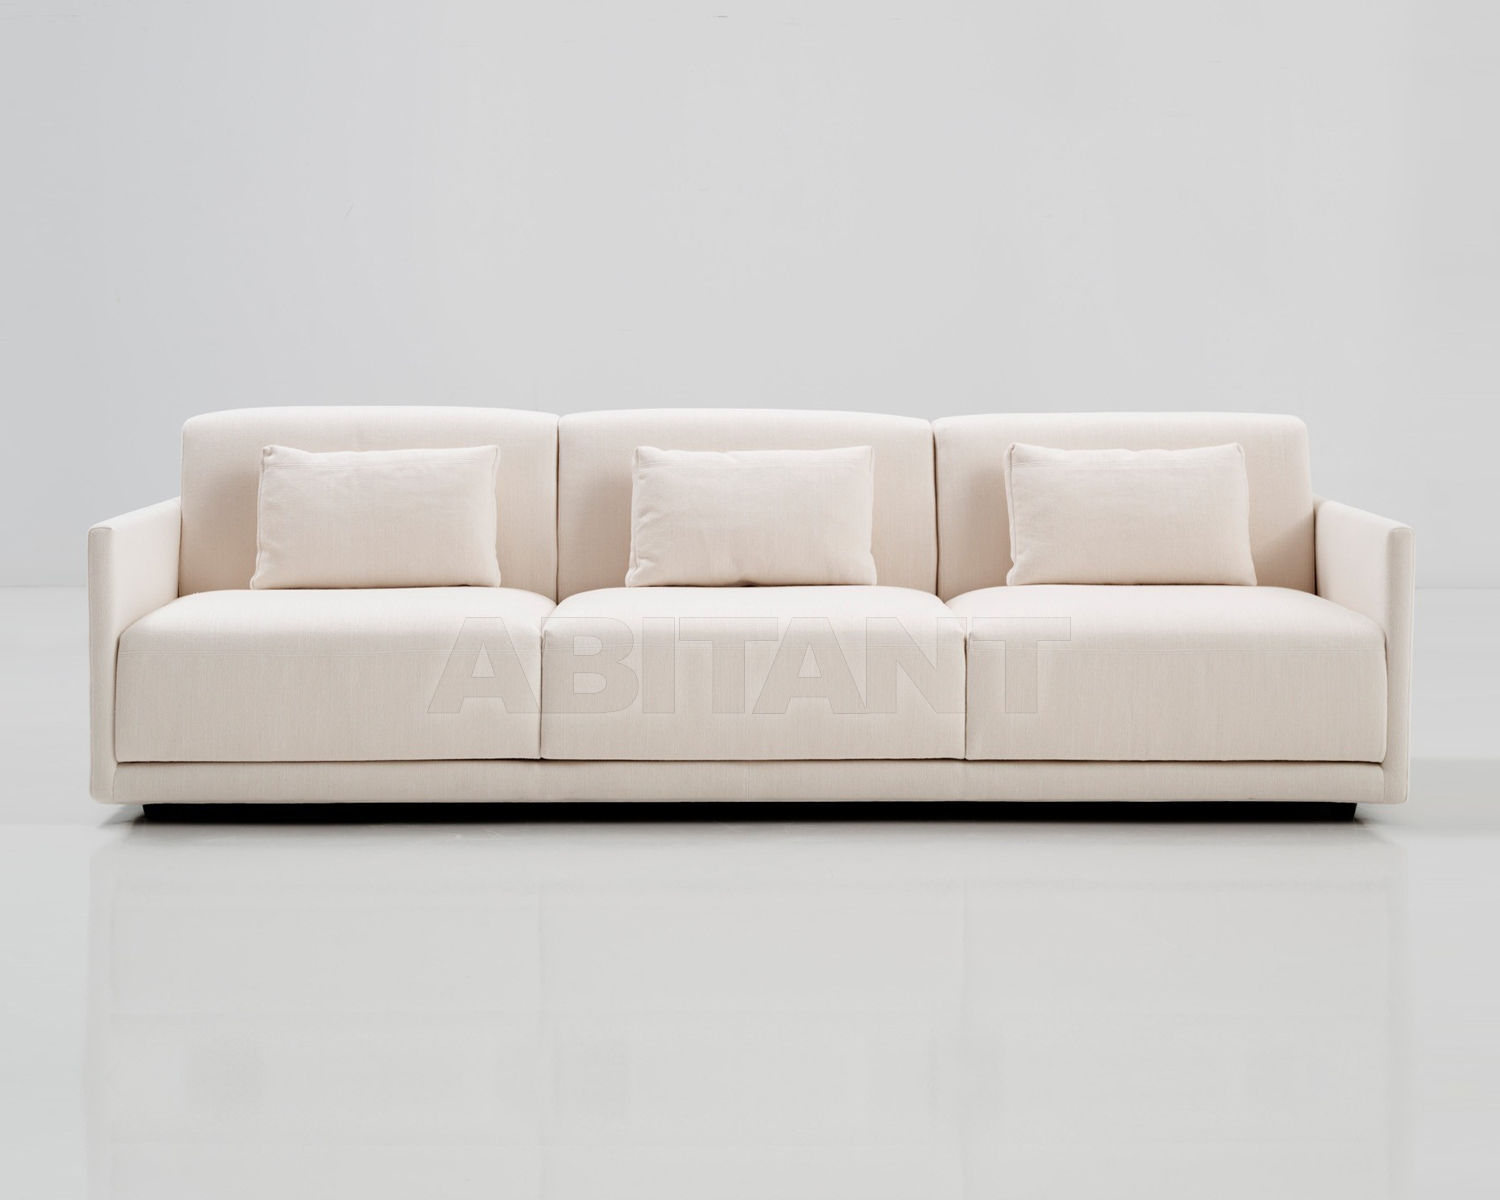 Купить Диван Happen Sancal Diseno, S.L. Sofa 256.11.Z2J.2